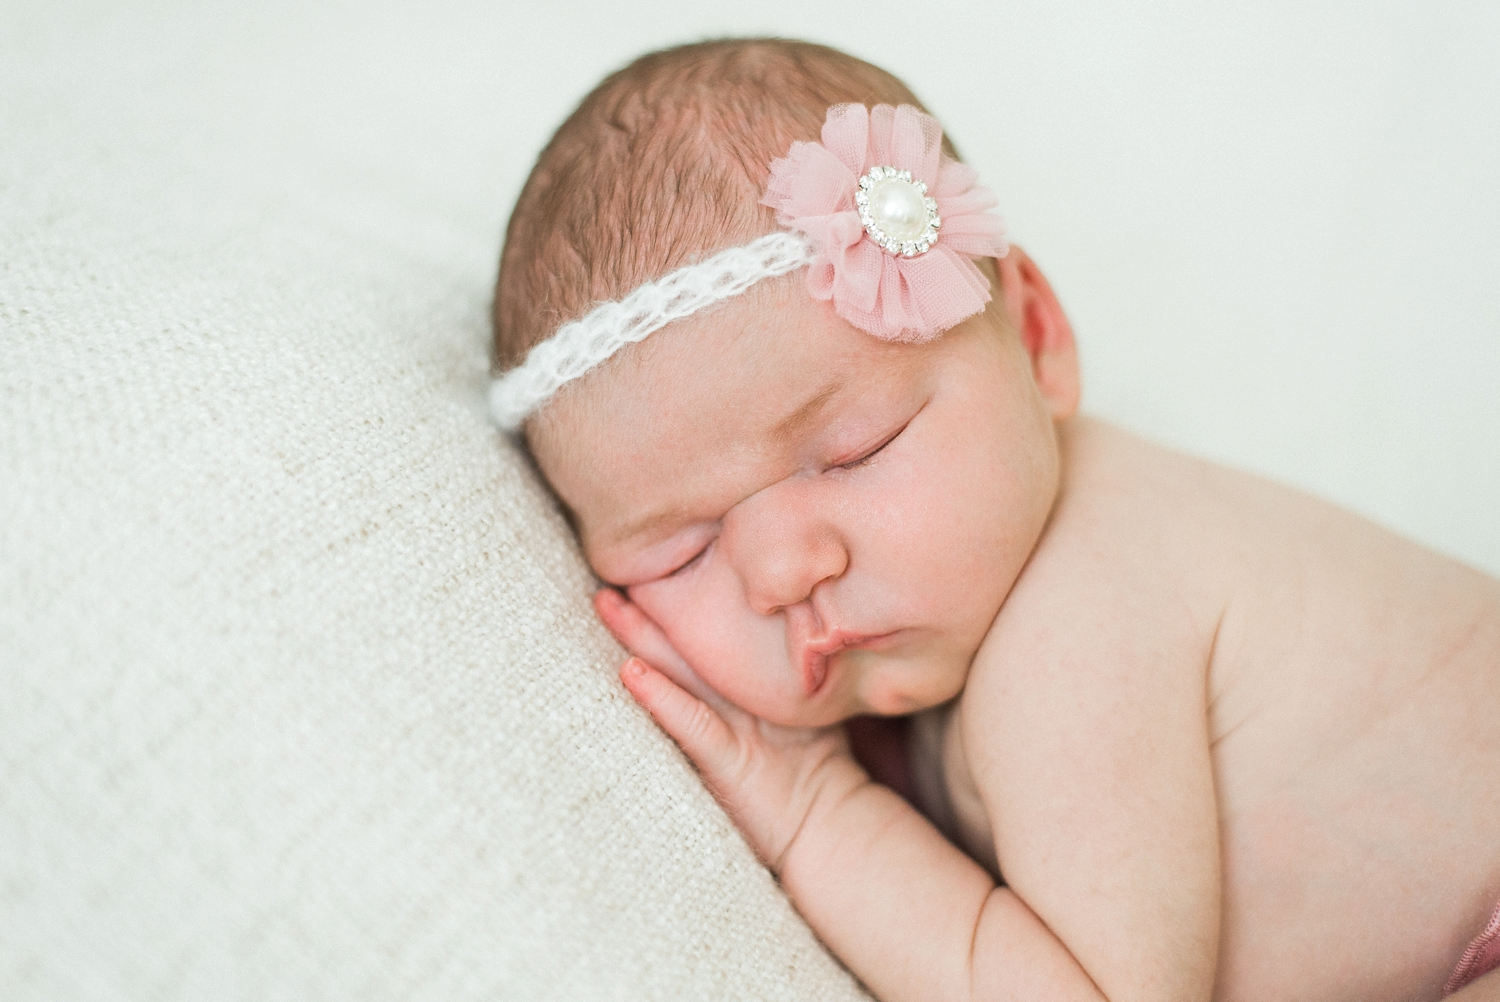 portland-newborn-photographer-baby-girl-pink-headband-03